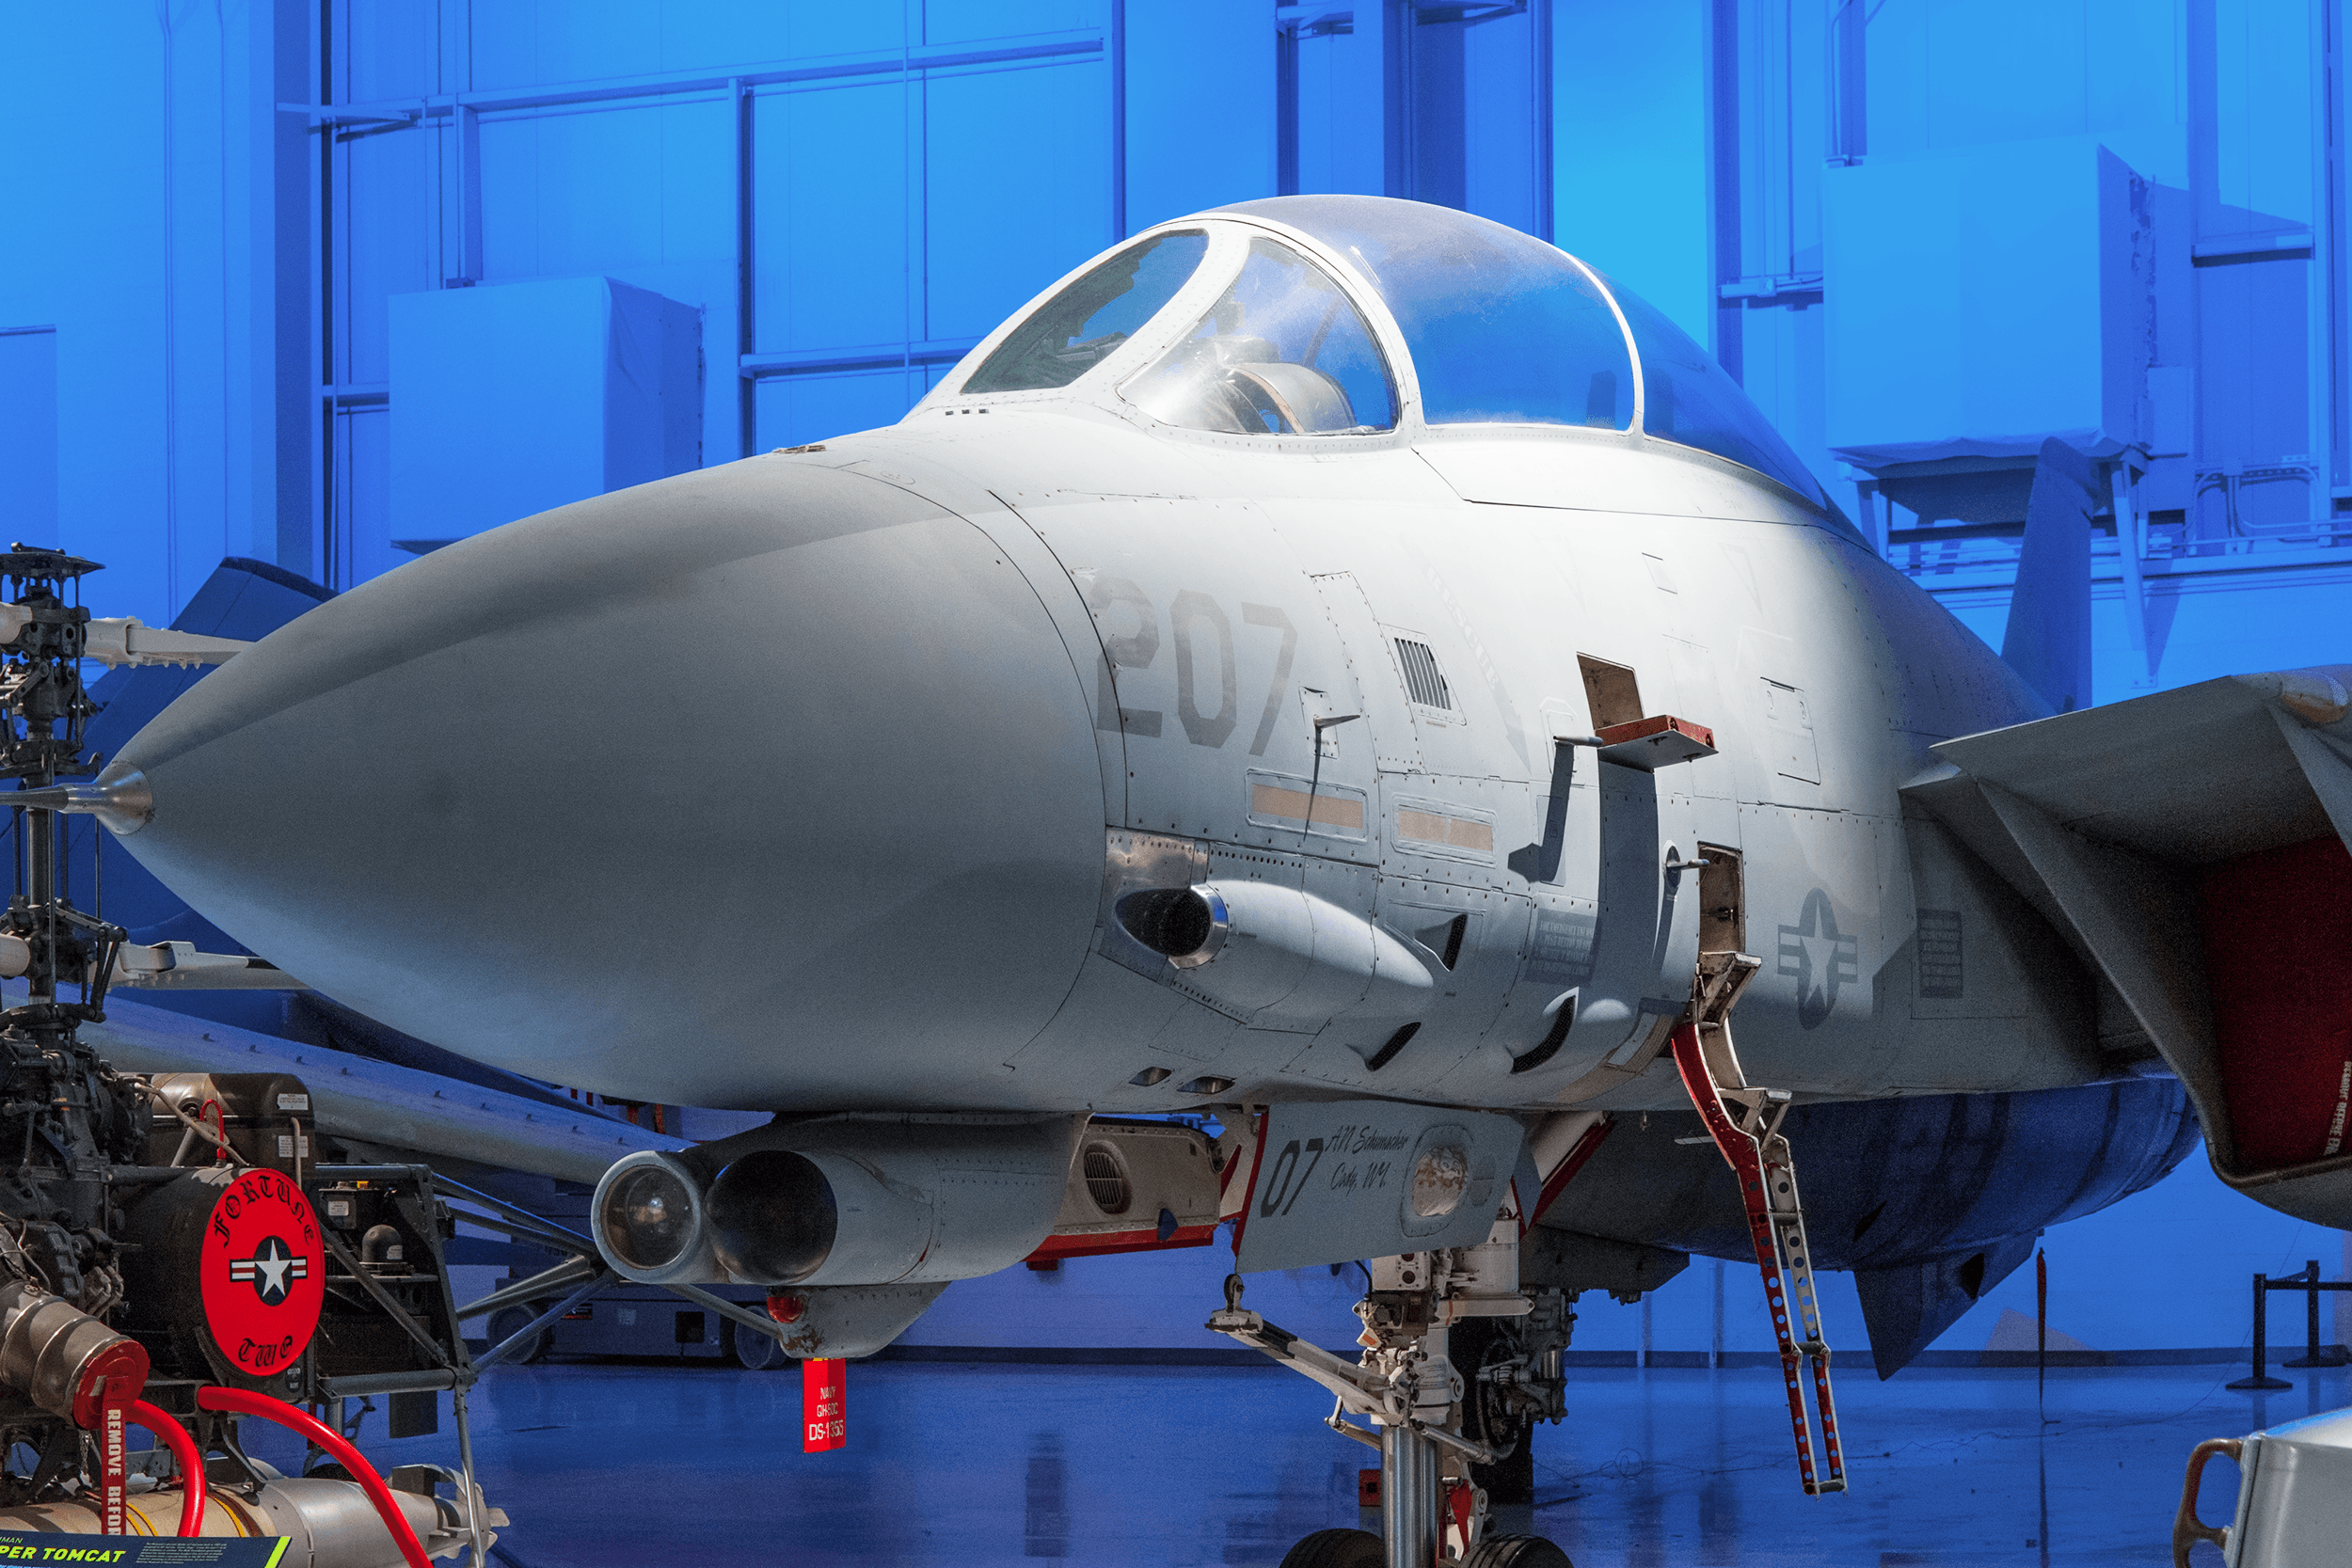 The Grumman F-14 Tomcat made its debut in 1974 replacing the F-4 Phantom II. The F-14 incorporated the experience of air combat against Russian MiG fighters during the Vietnam War. The aircraft was widely deployed in many conflicts around the world. After an impressive 30 years in service, the last F-14 was retired in 2006.